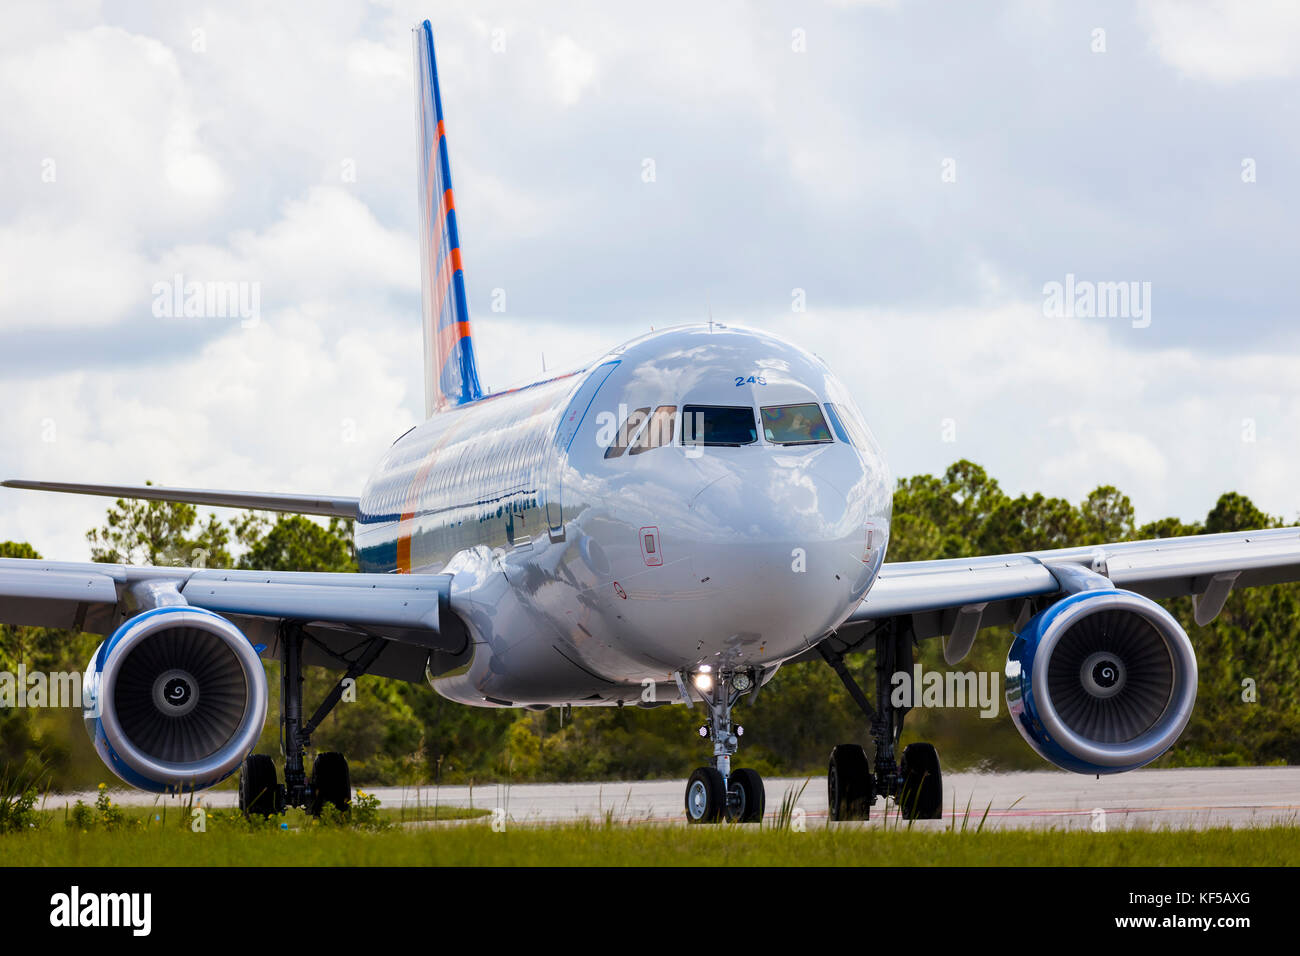 Allegiant commercial passenger airliner taxiing on ground at Punta Gorda Florida airport - Stock Image